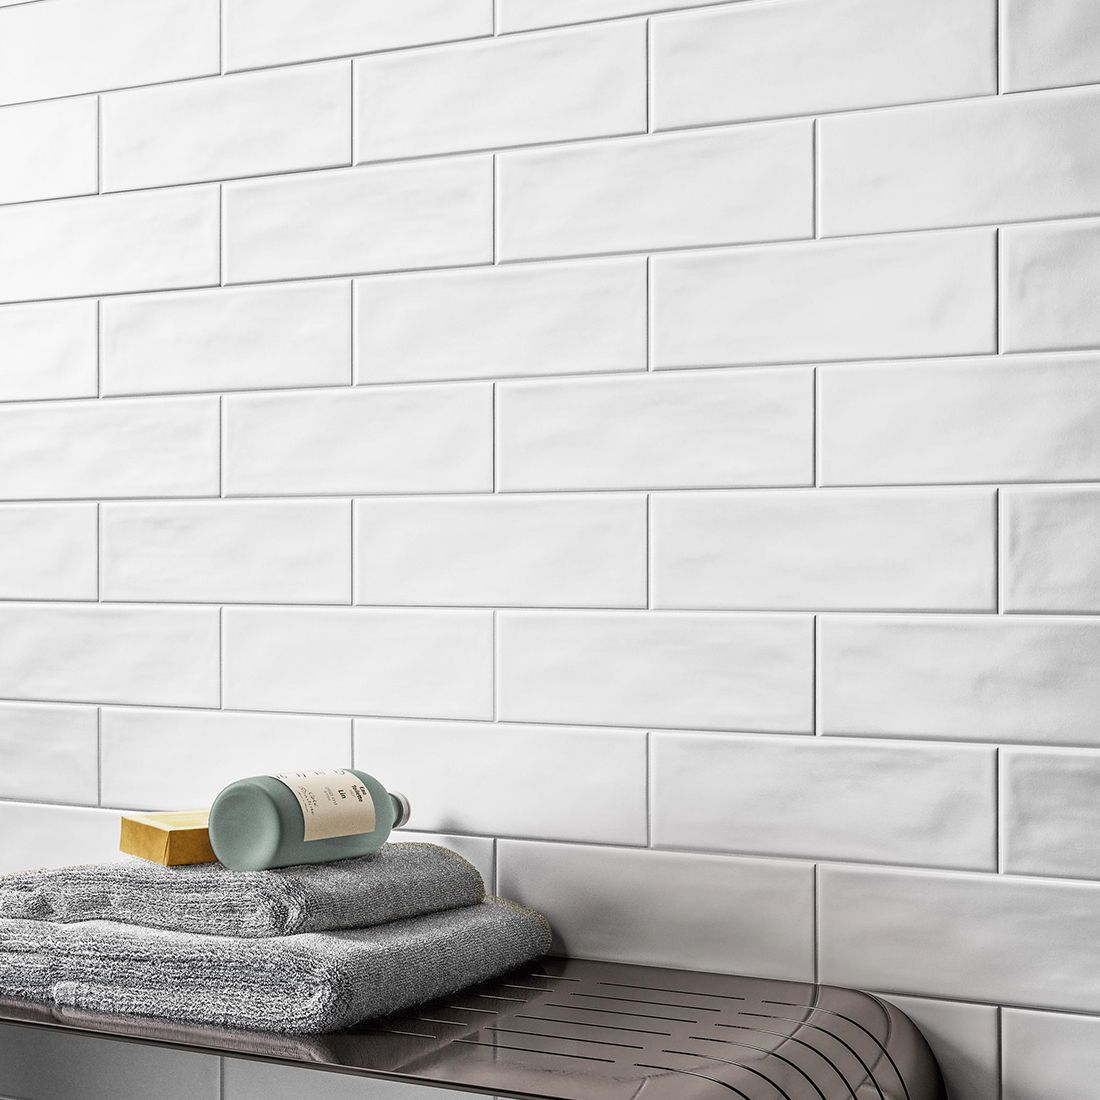 Whoosh White Matt Subway Tile Effortless Blithe And Boasting A Sought After Handmade L White Subway Tile Kitchen Kitchen Splashback Tiles Handmade Subway Tile